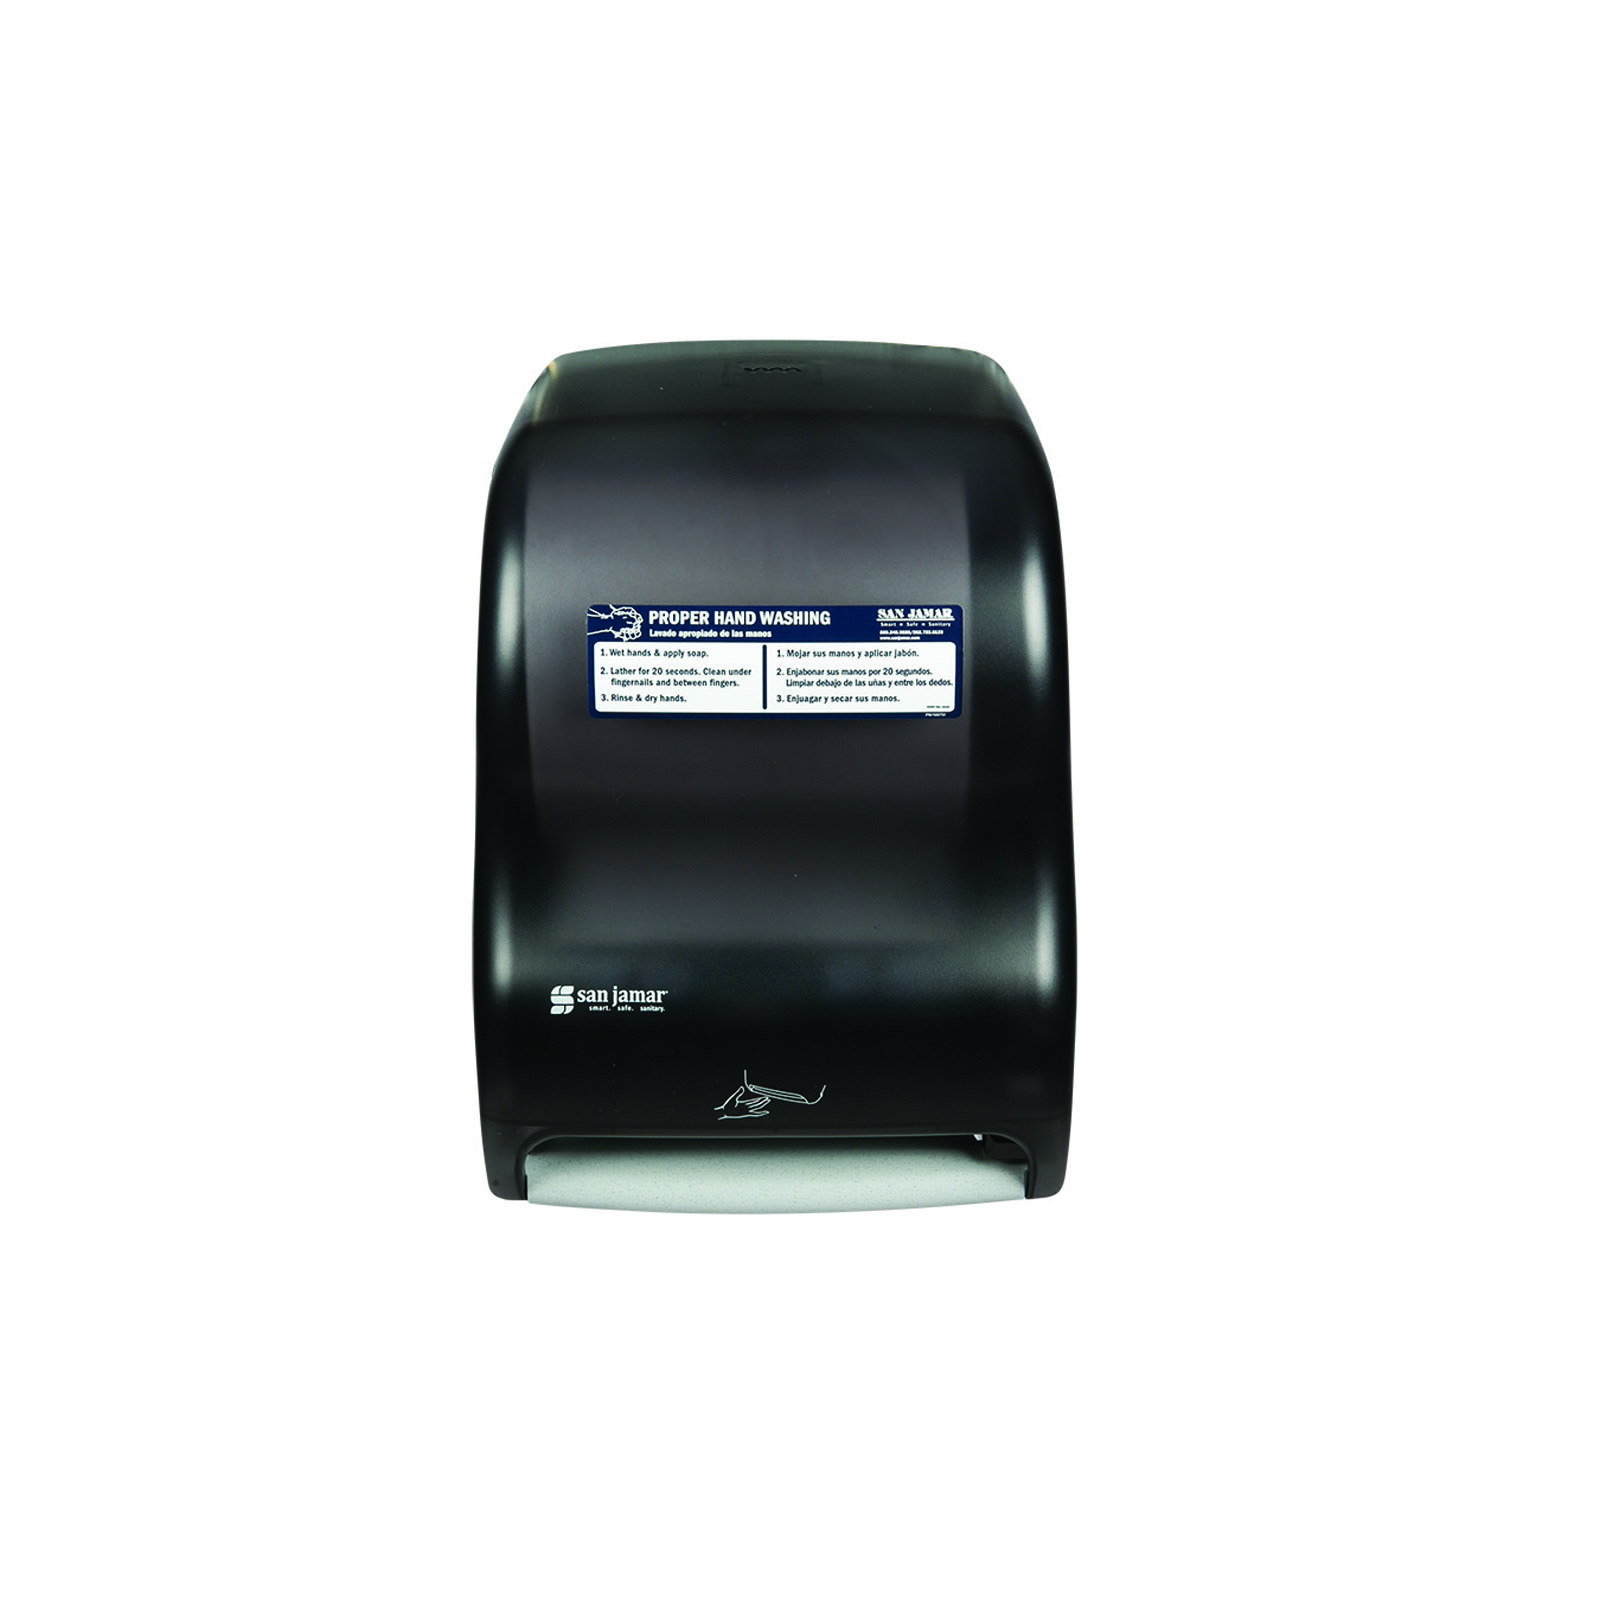 San Jamar T1400TBKHW paper towel dispenser